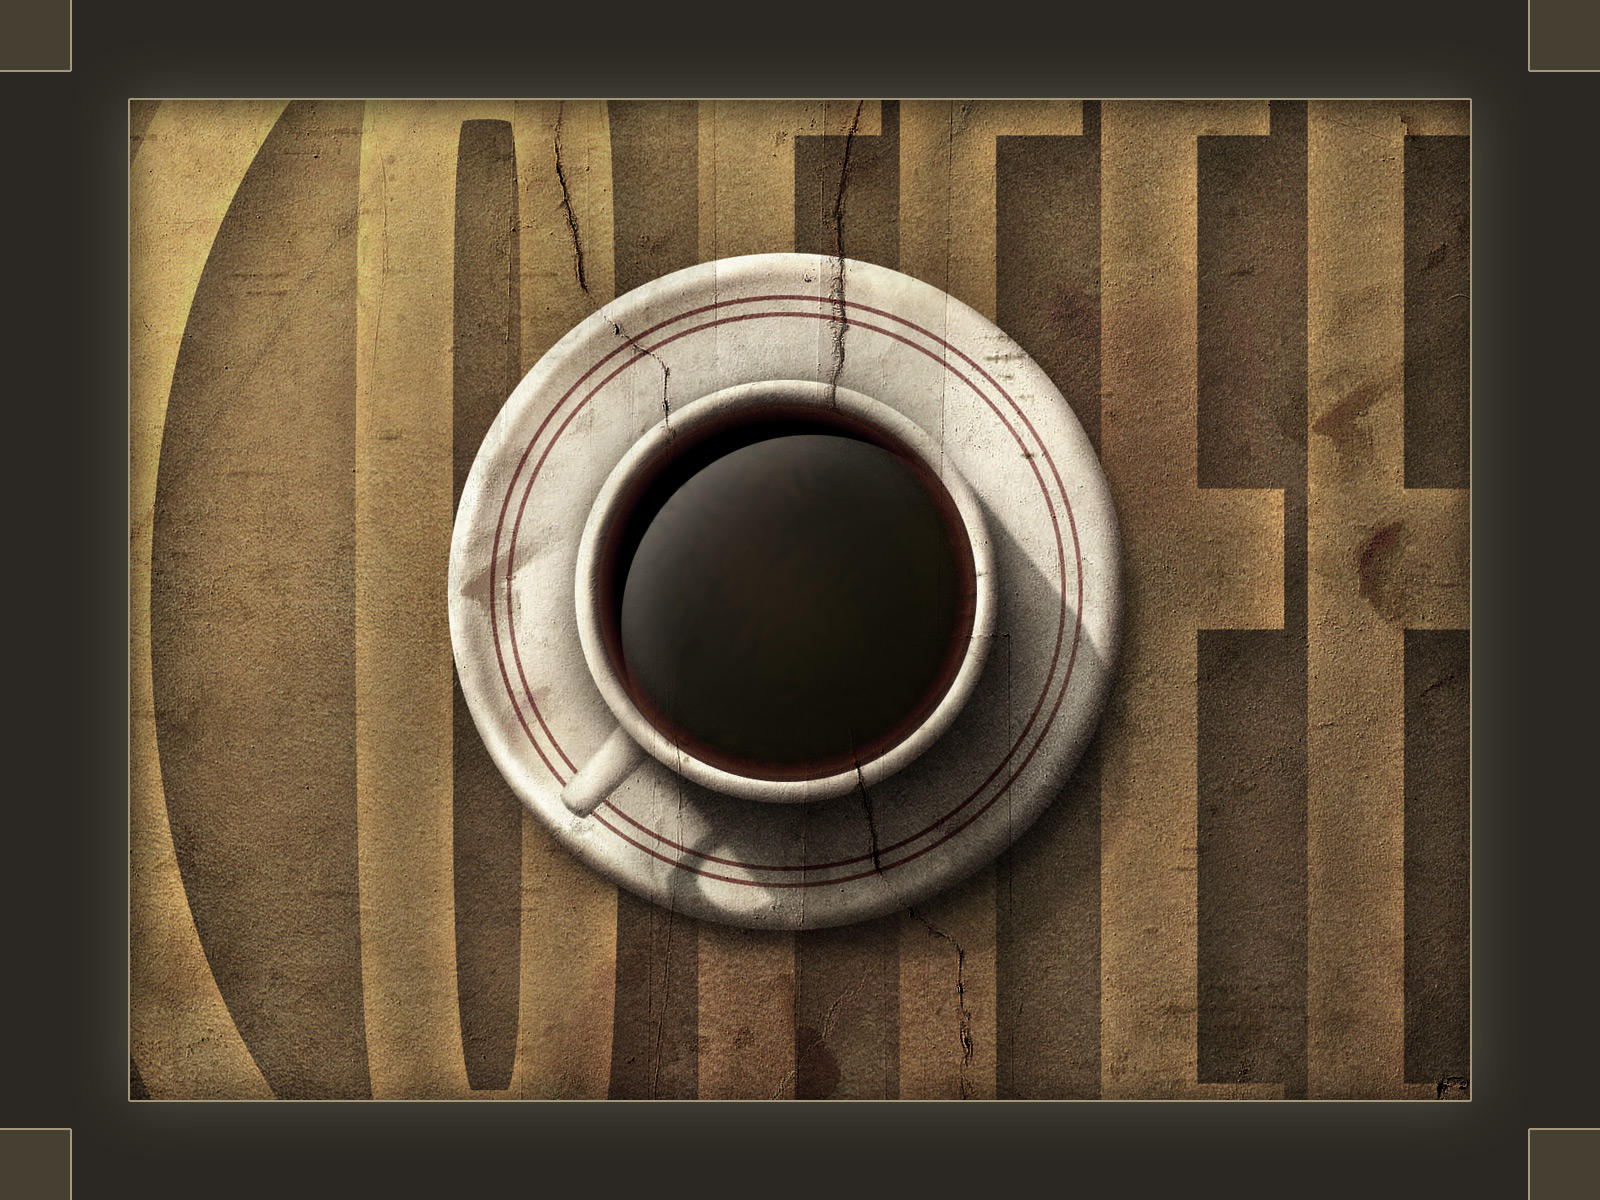 Coffee Cup - Wallpaper by dracusis